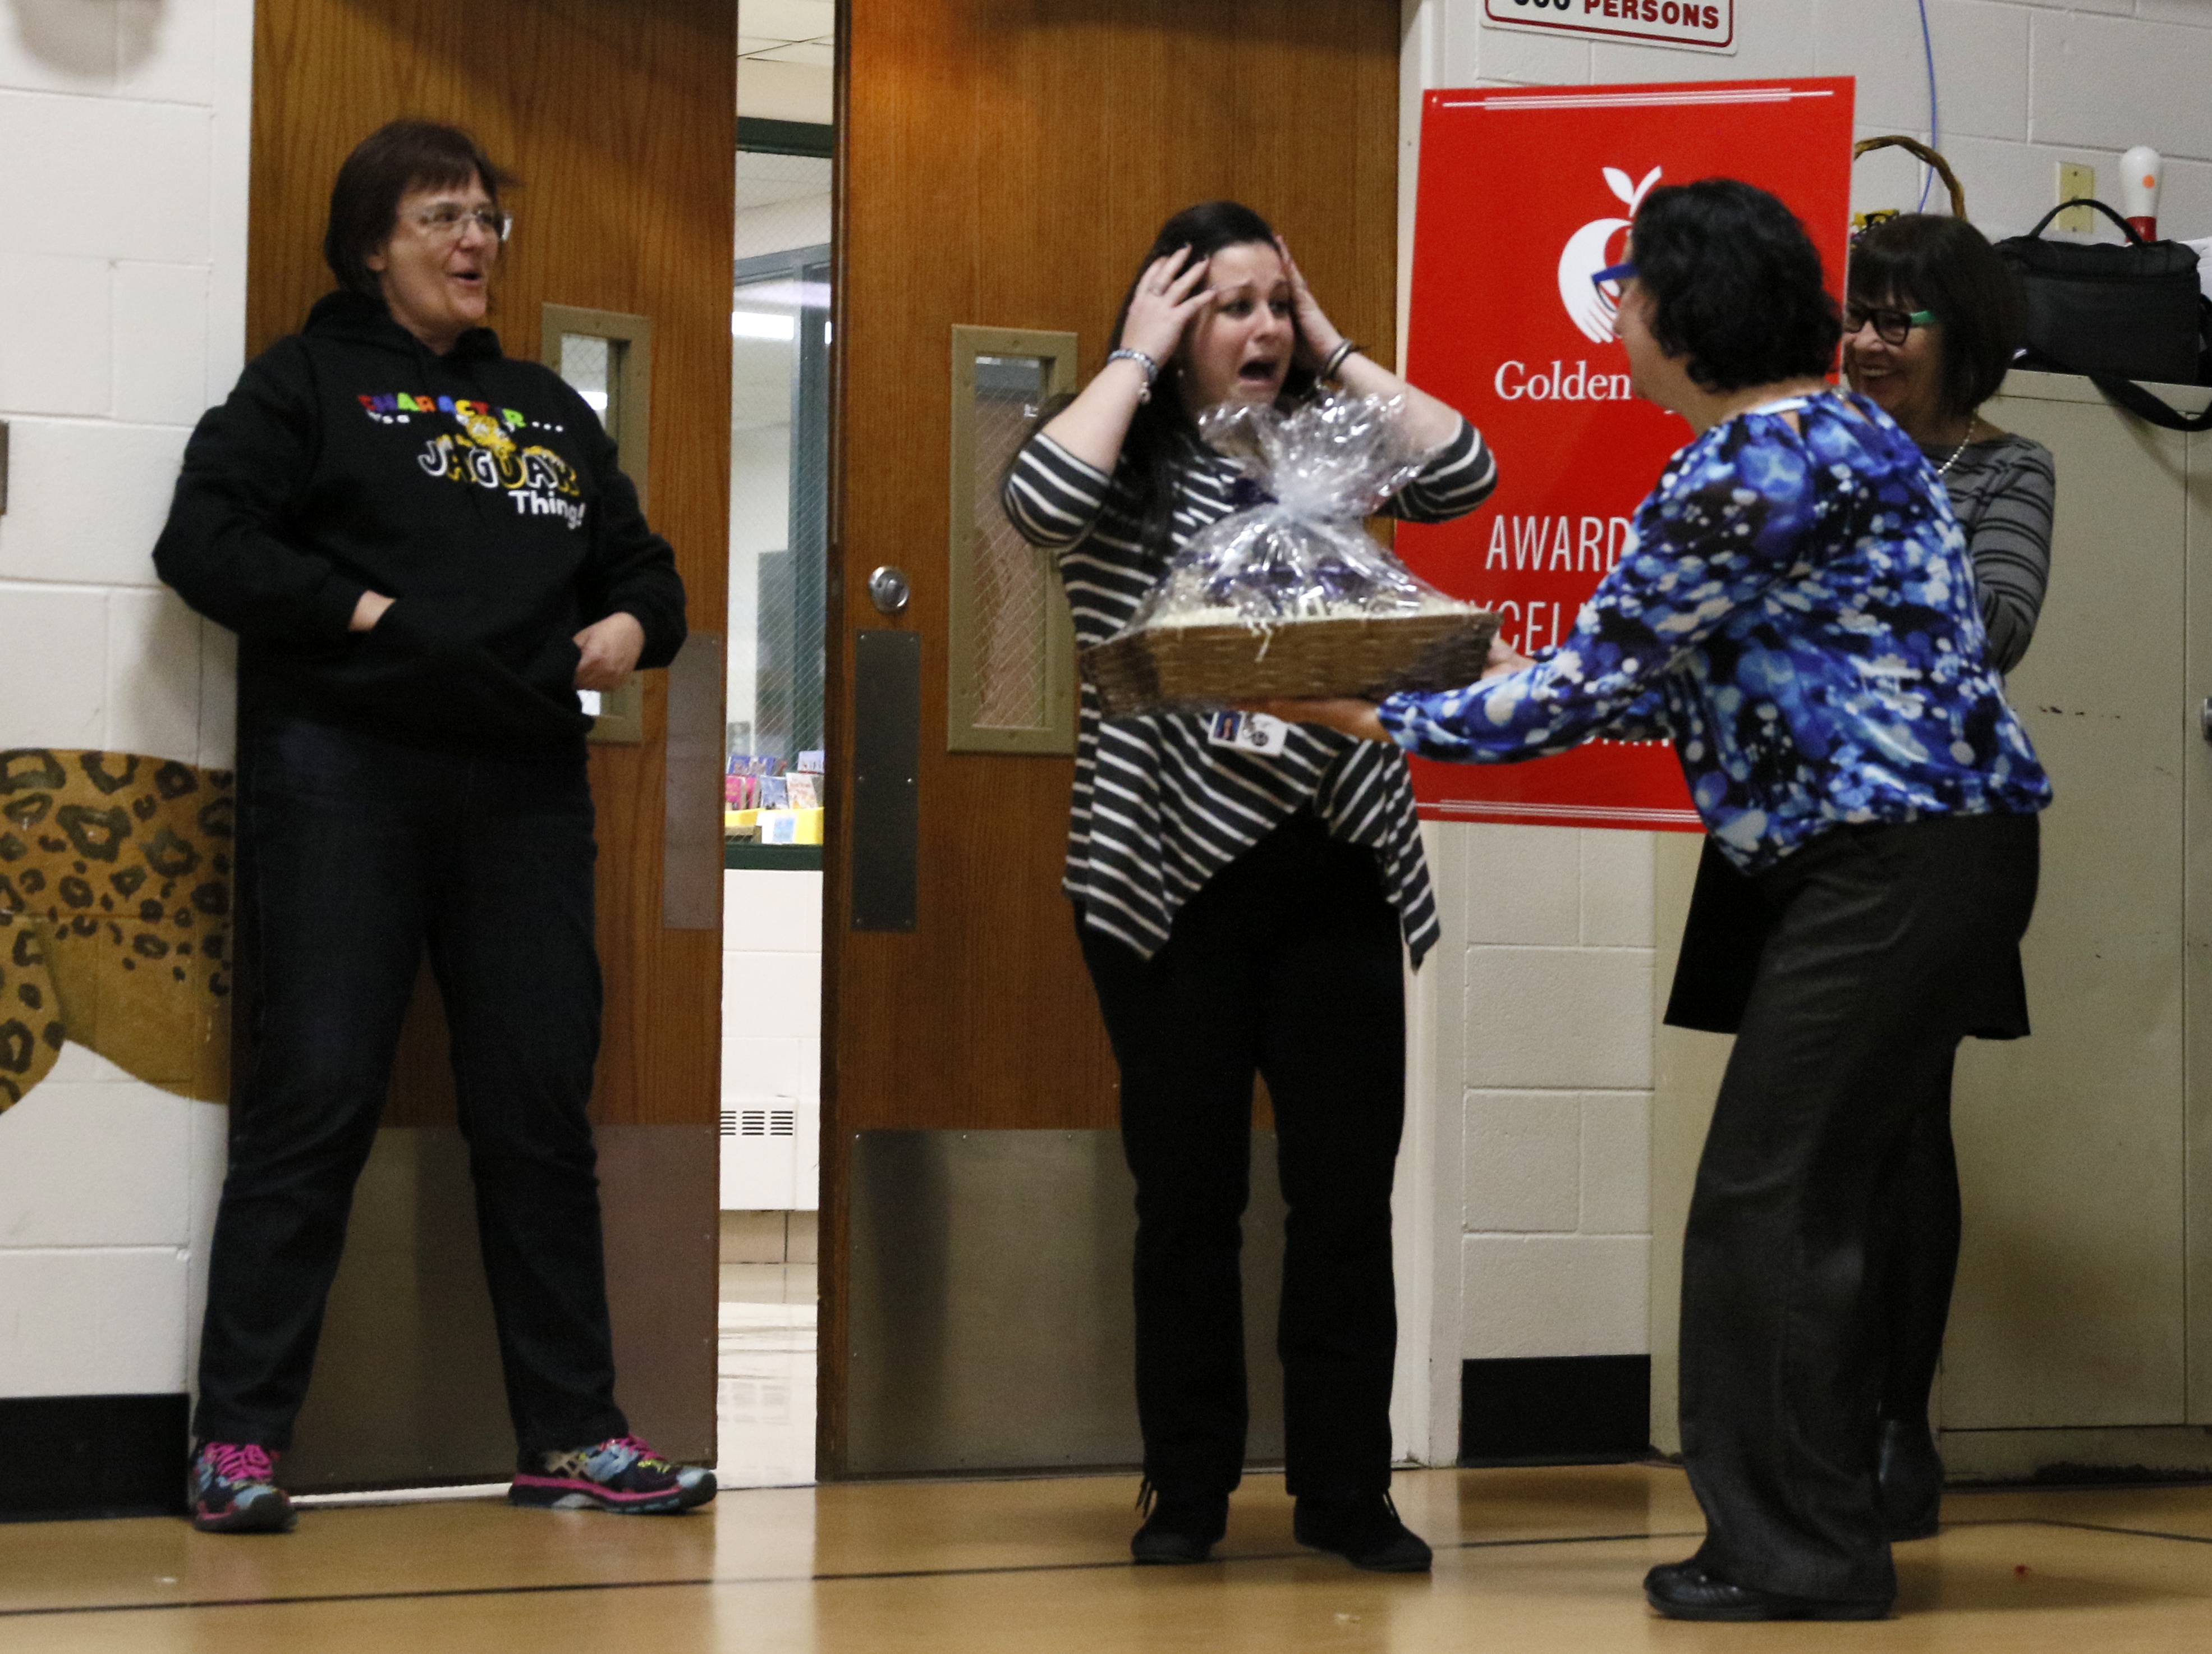 Jennifer Eggert, an instructional technology coach at DuJardin Elementary School in Bloomingdale, reacts to being named a Golden Apple recipient during an assembly to surprise her with the award.